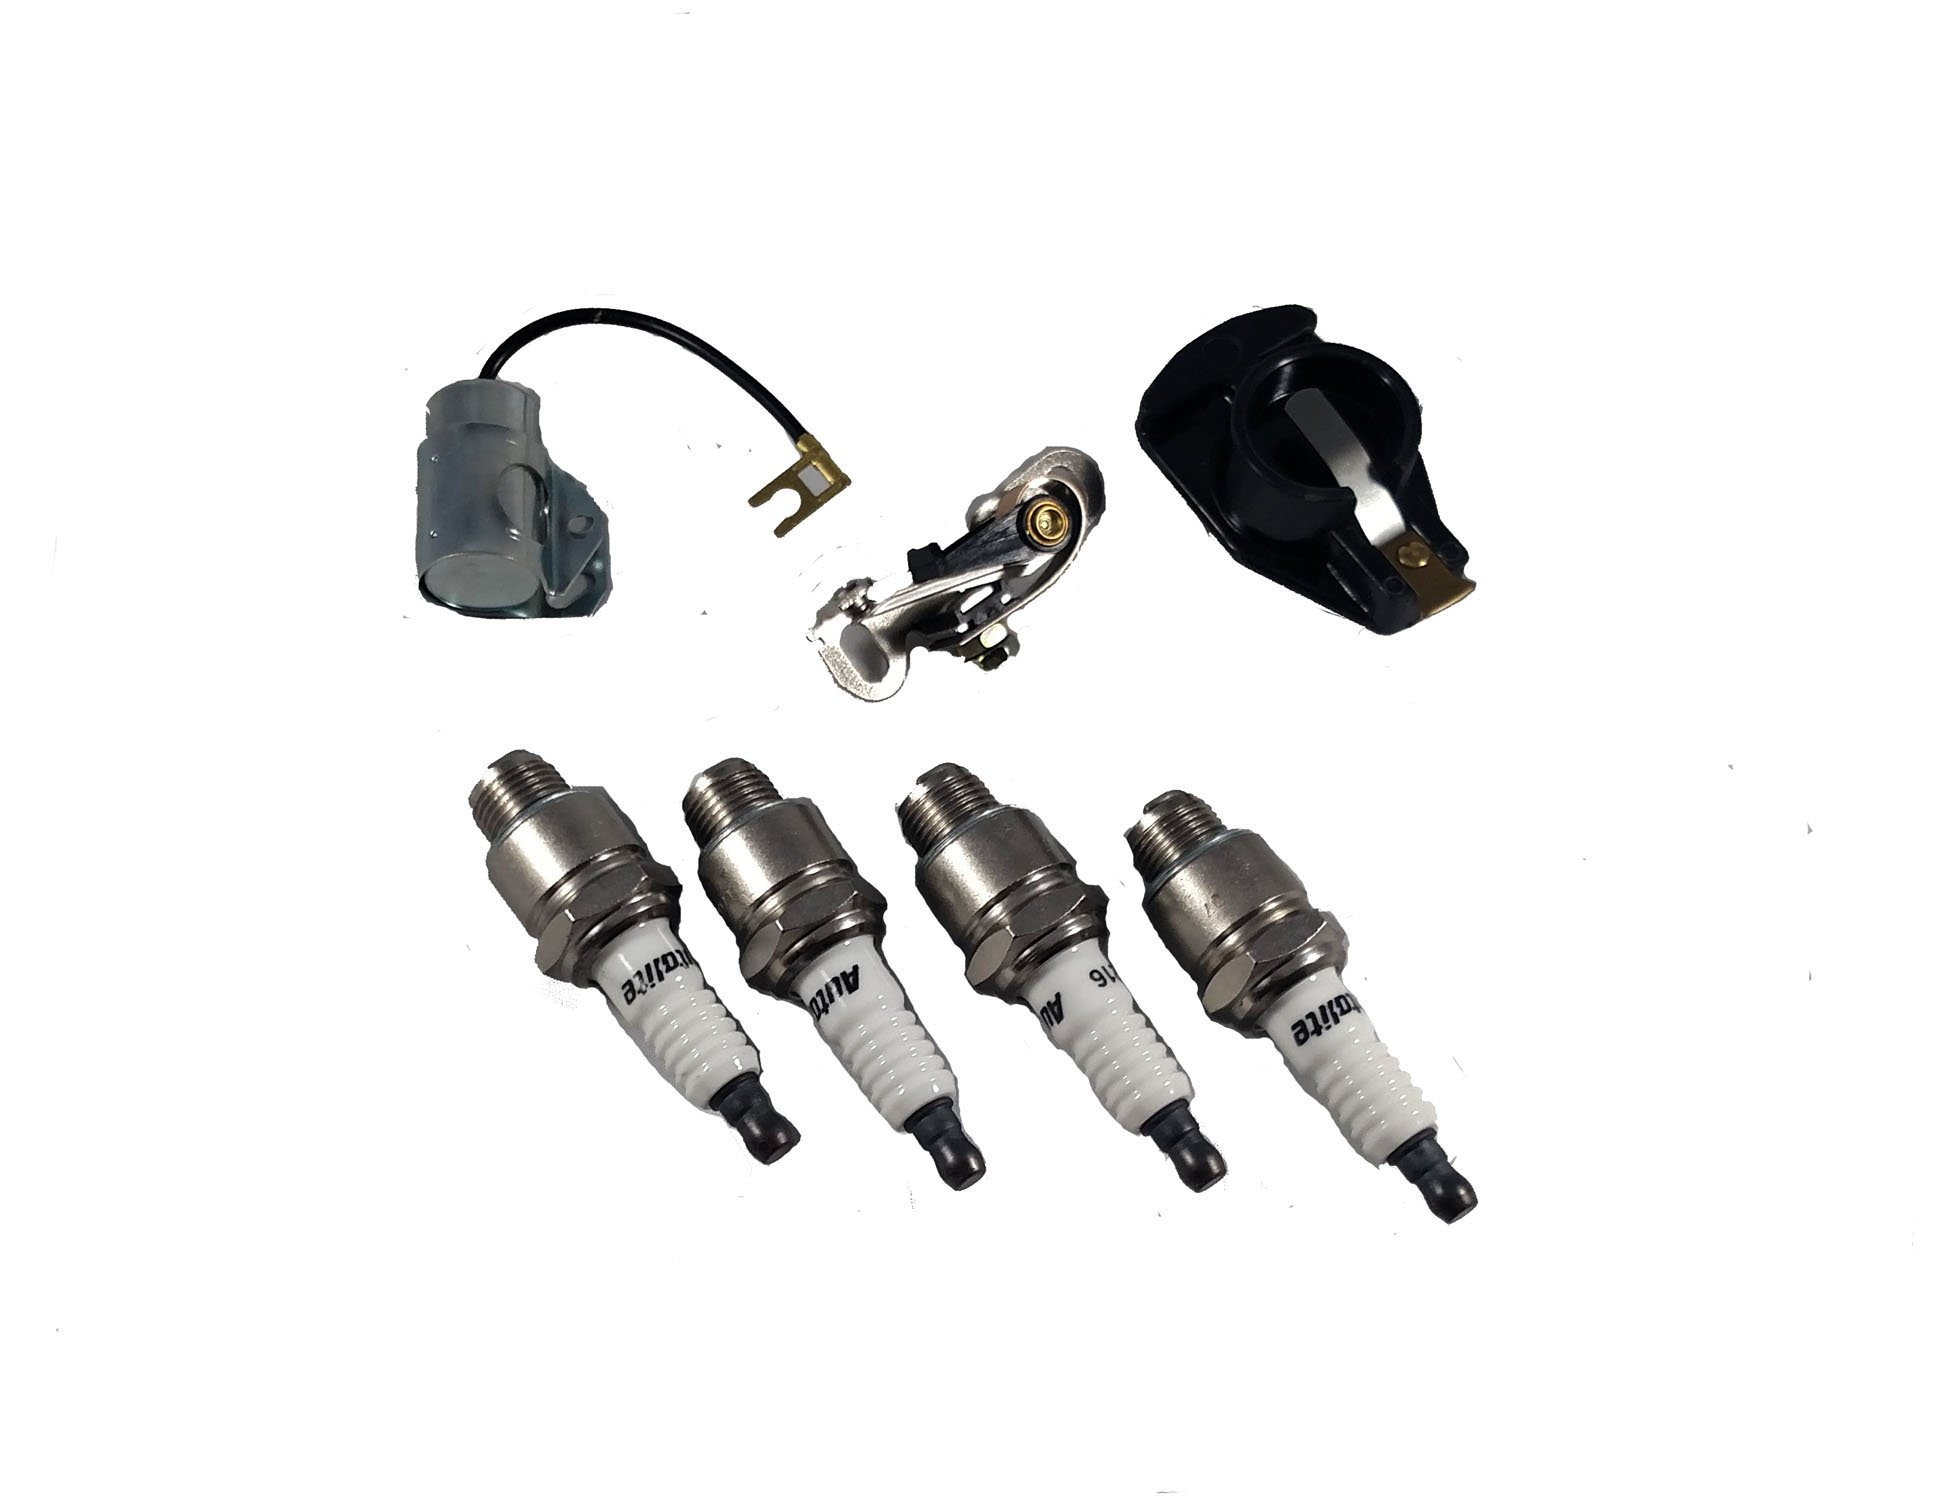 Ford Tractor Ignition Tune Up Kit with Spark Plugs